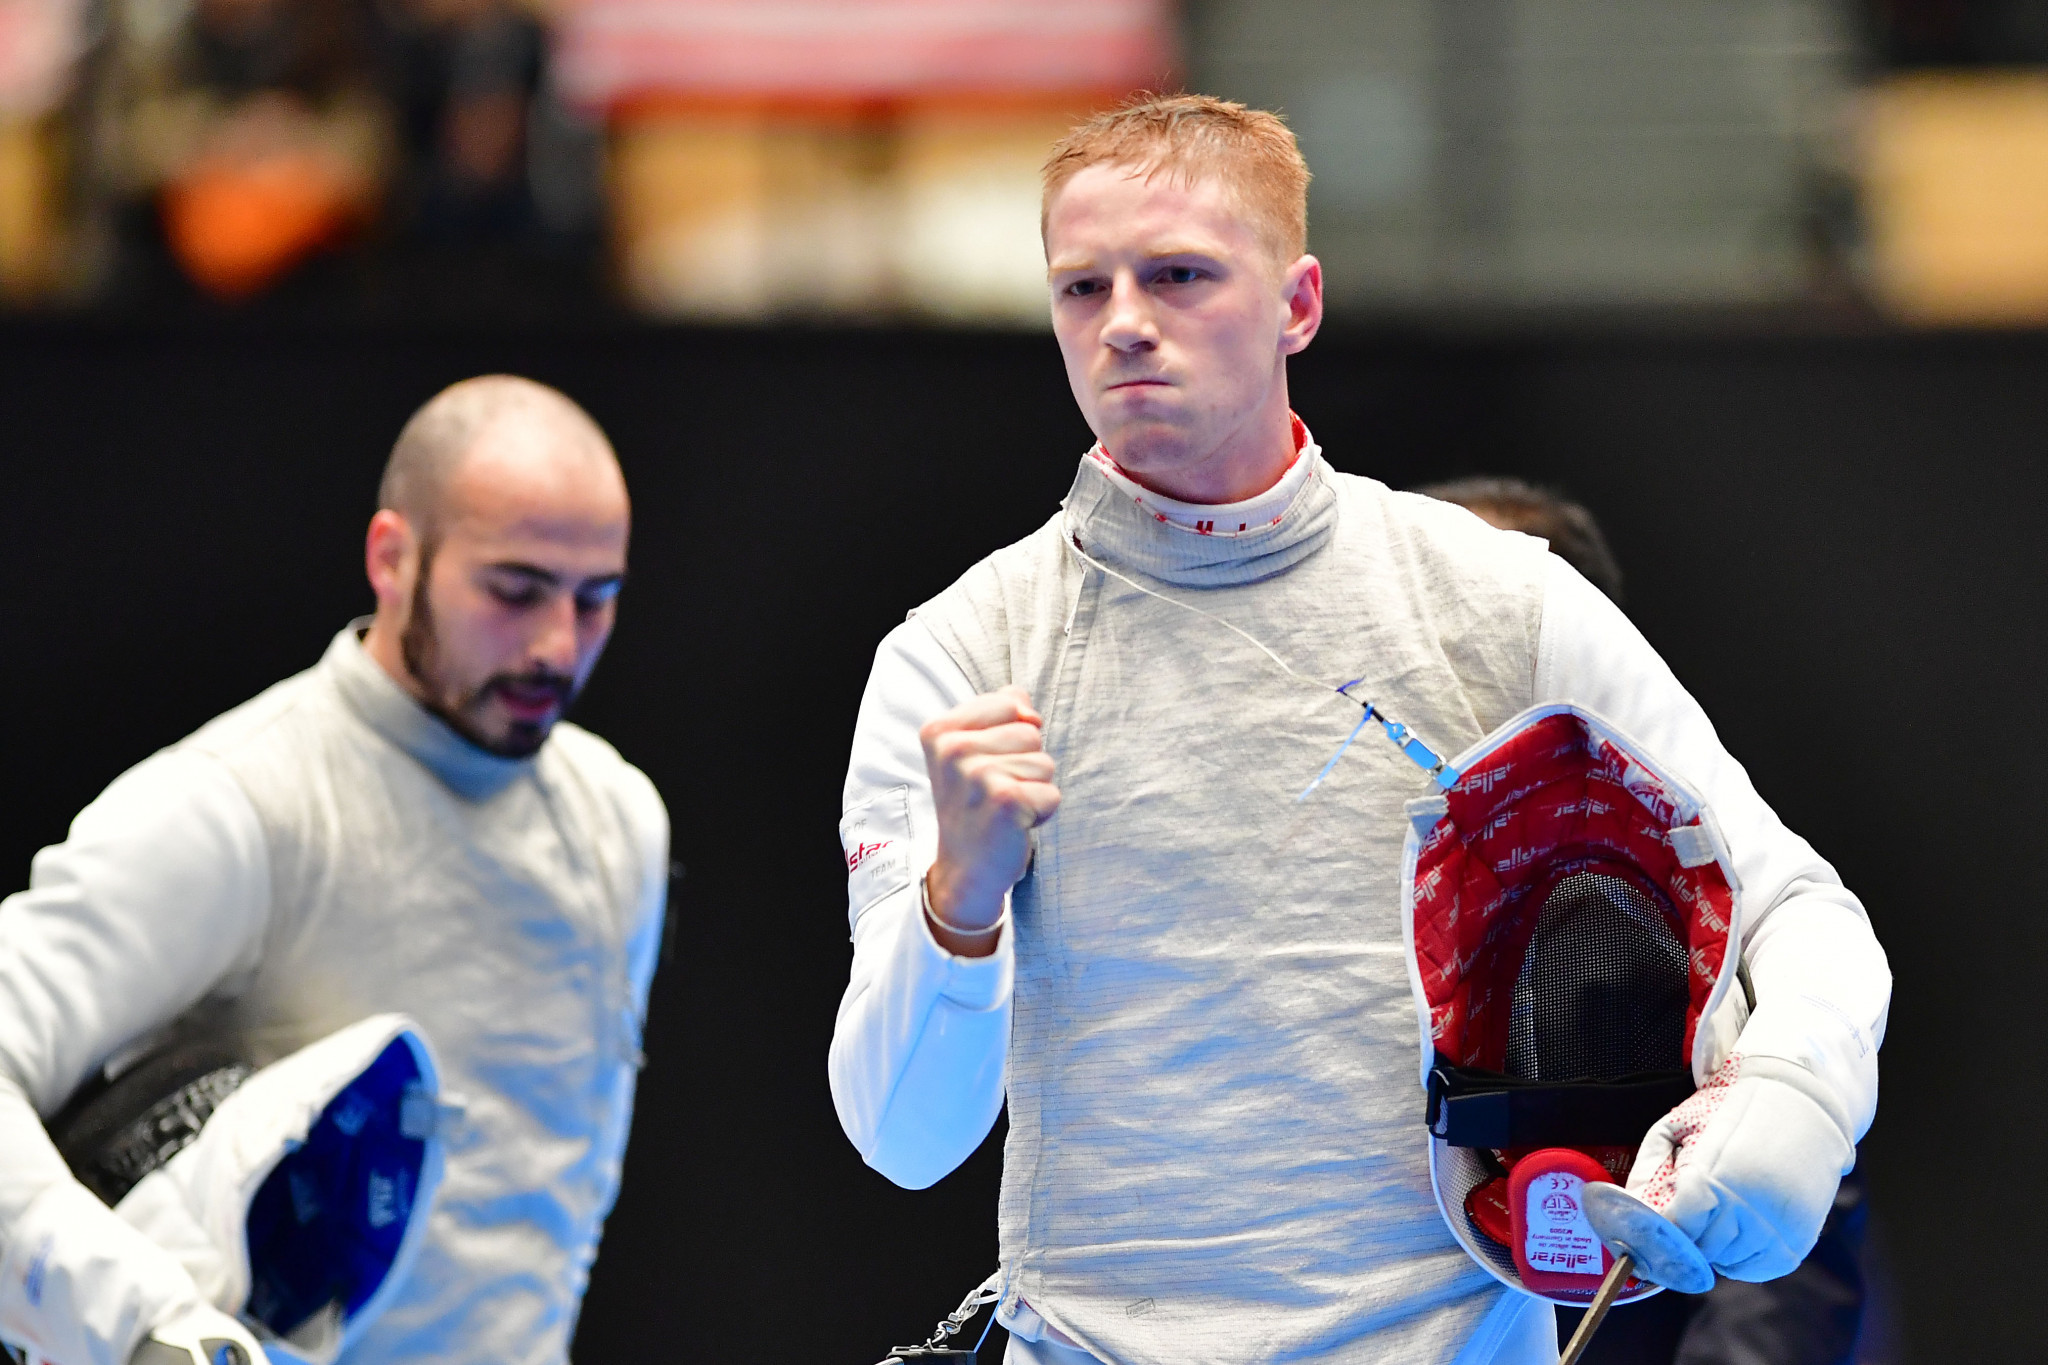 Men's world number one Race Imboden, right, is among those set to compete for the host nation ©Getty Images